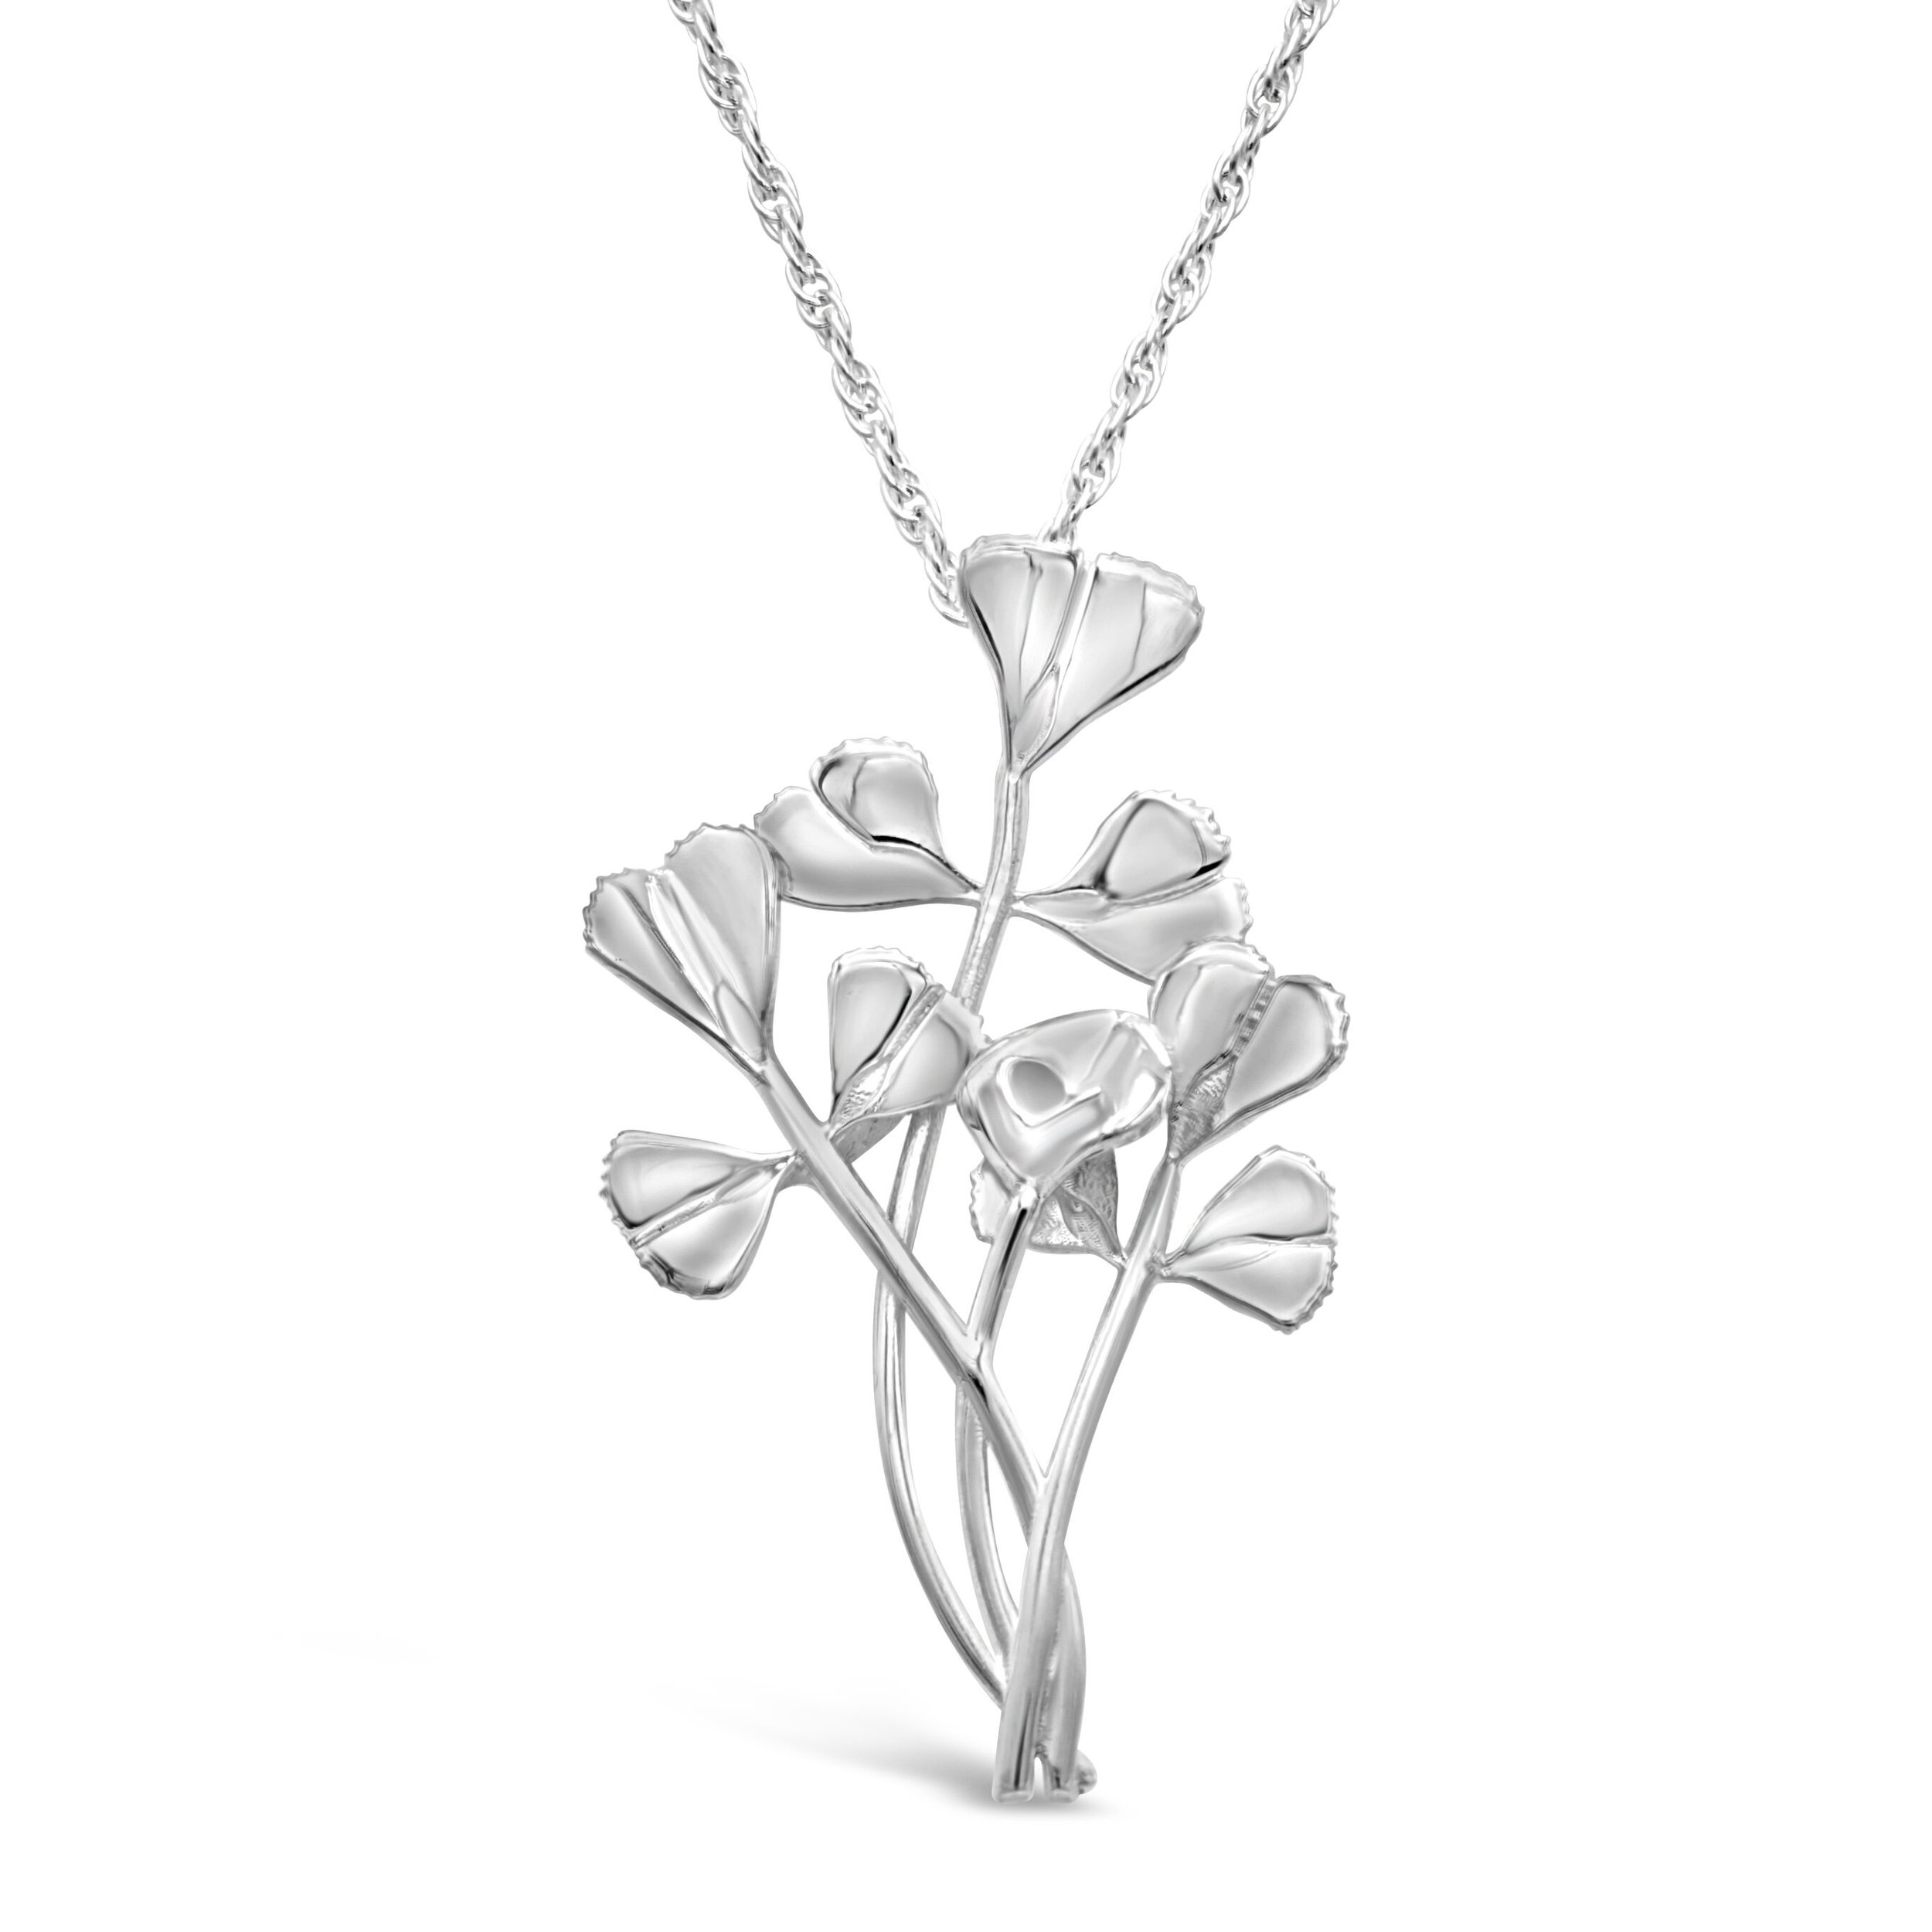 burclover-medicago-truncatula-silver-necklace.jpg